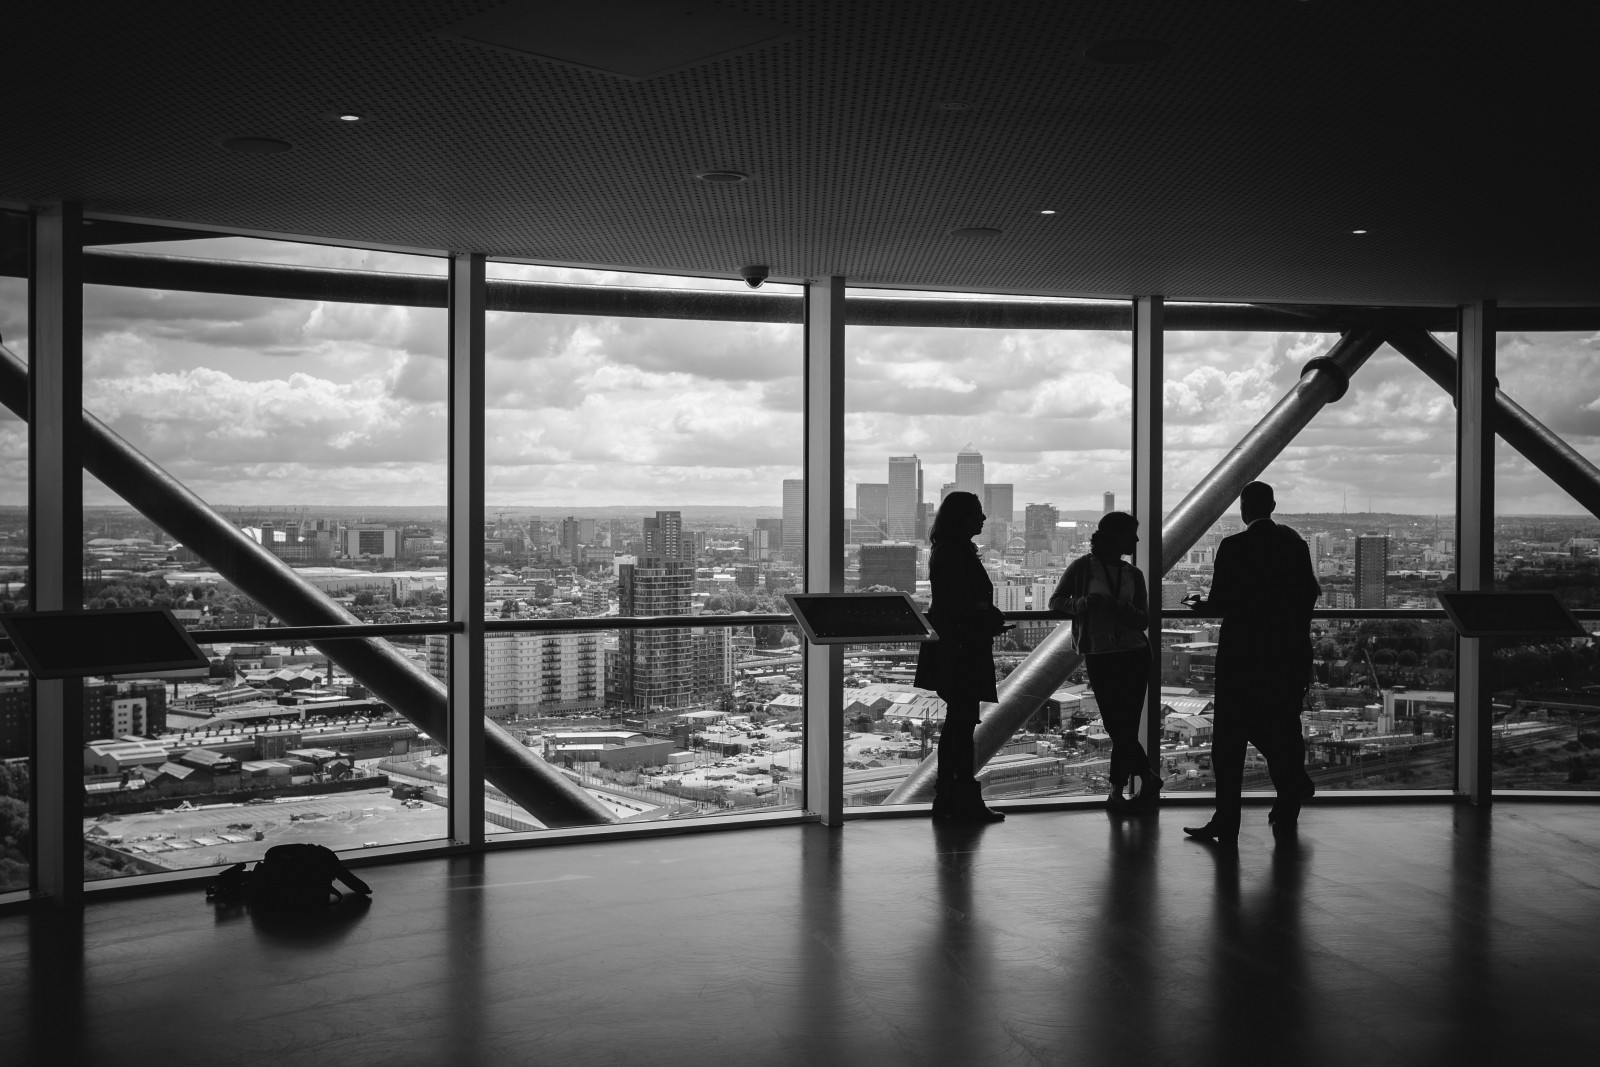 black-and-white-image-of-colleagues-standing-in-office-and-looking-at-city-view-through-window (1).jpg